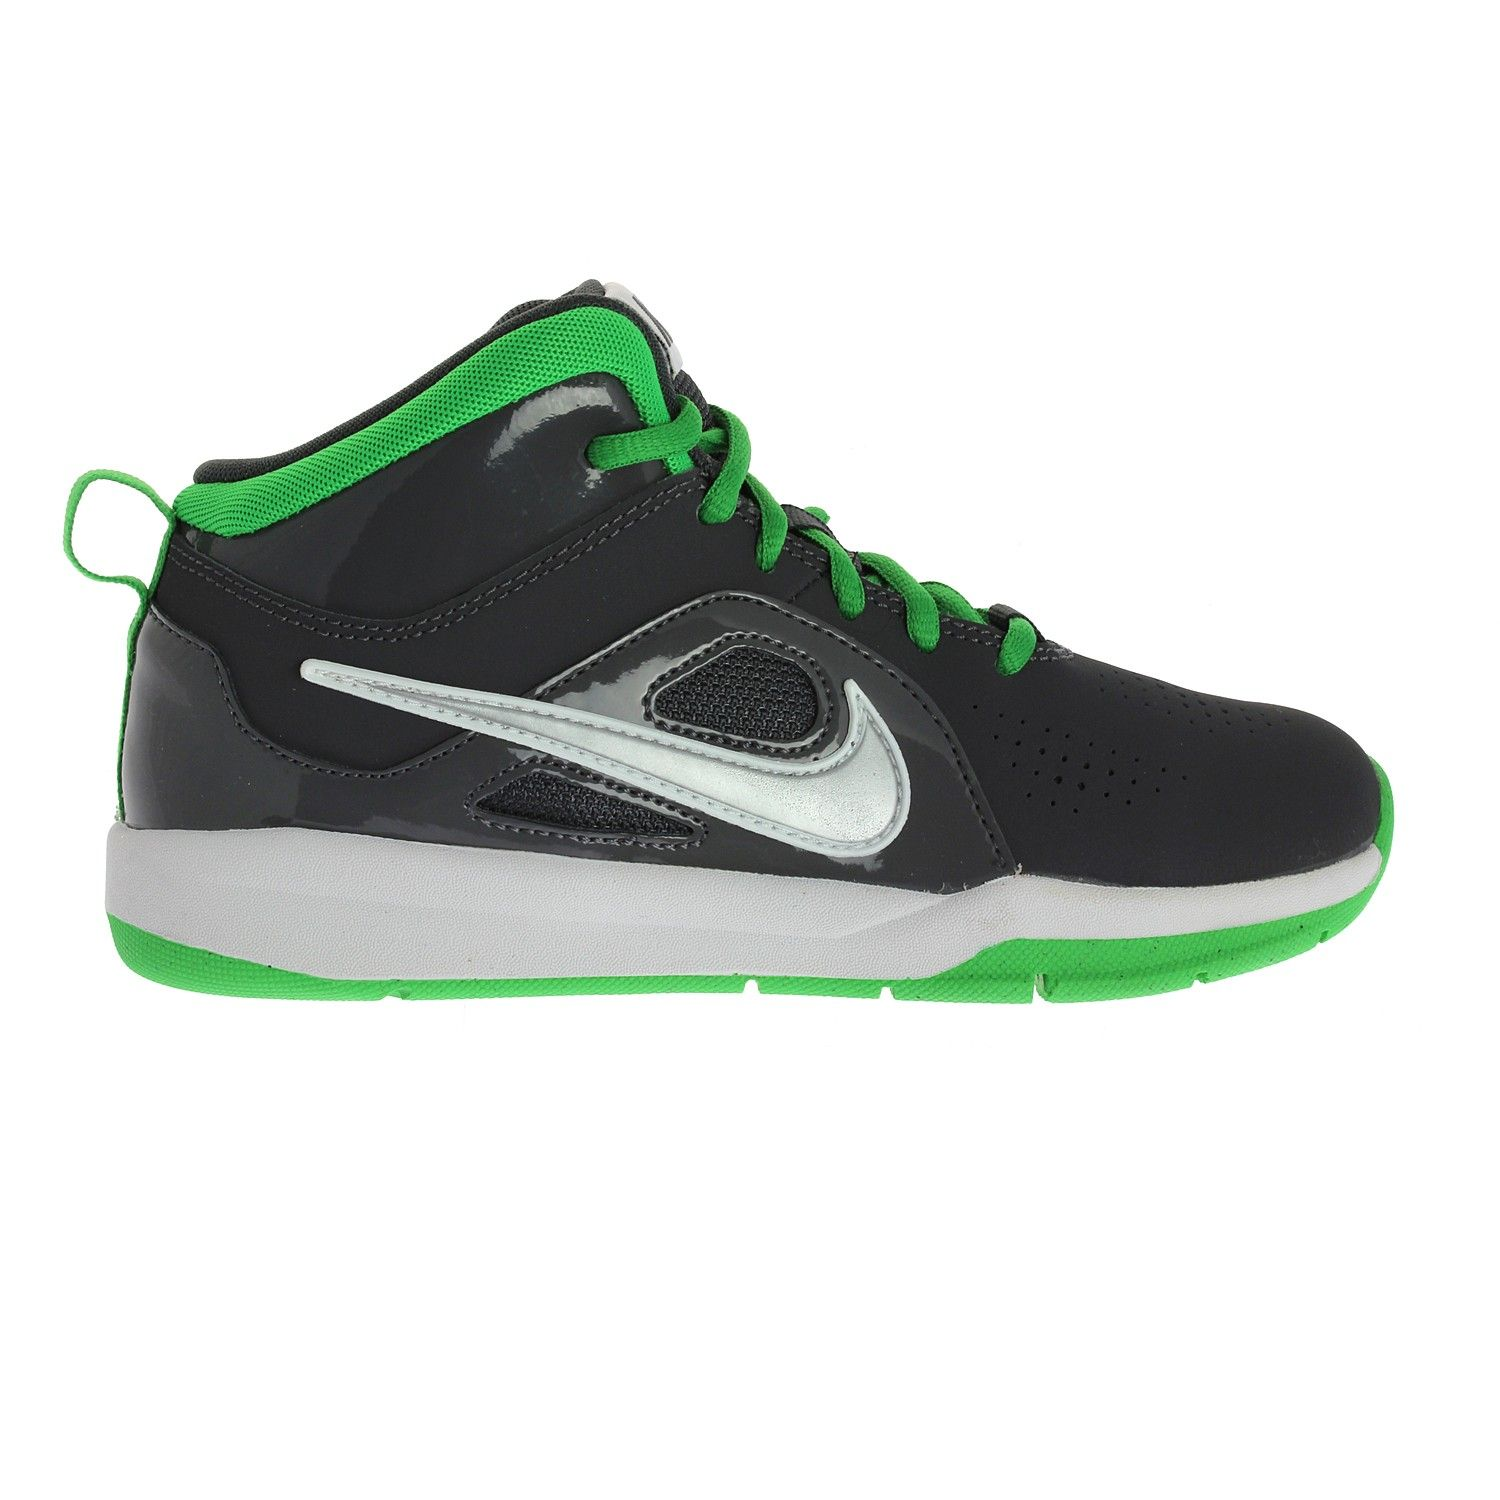 Basketball shoes for young basketball players.The Nike Team Hustle provides  a smooth ride that will deliver comfort all game long.